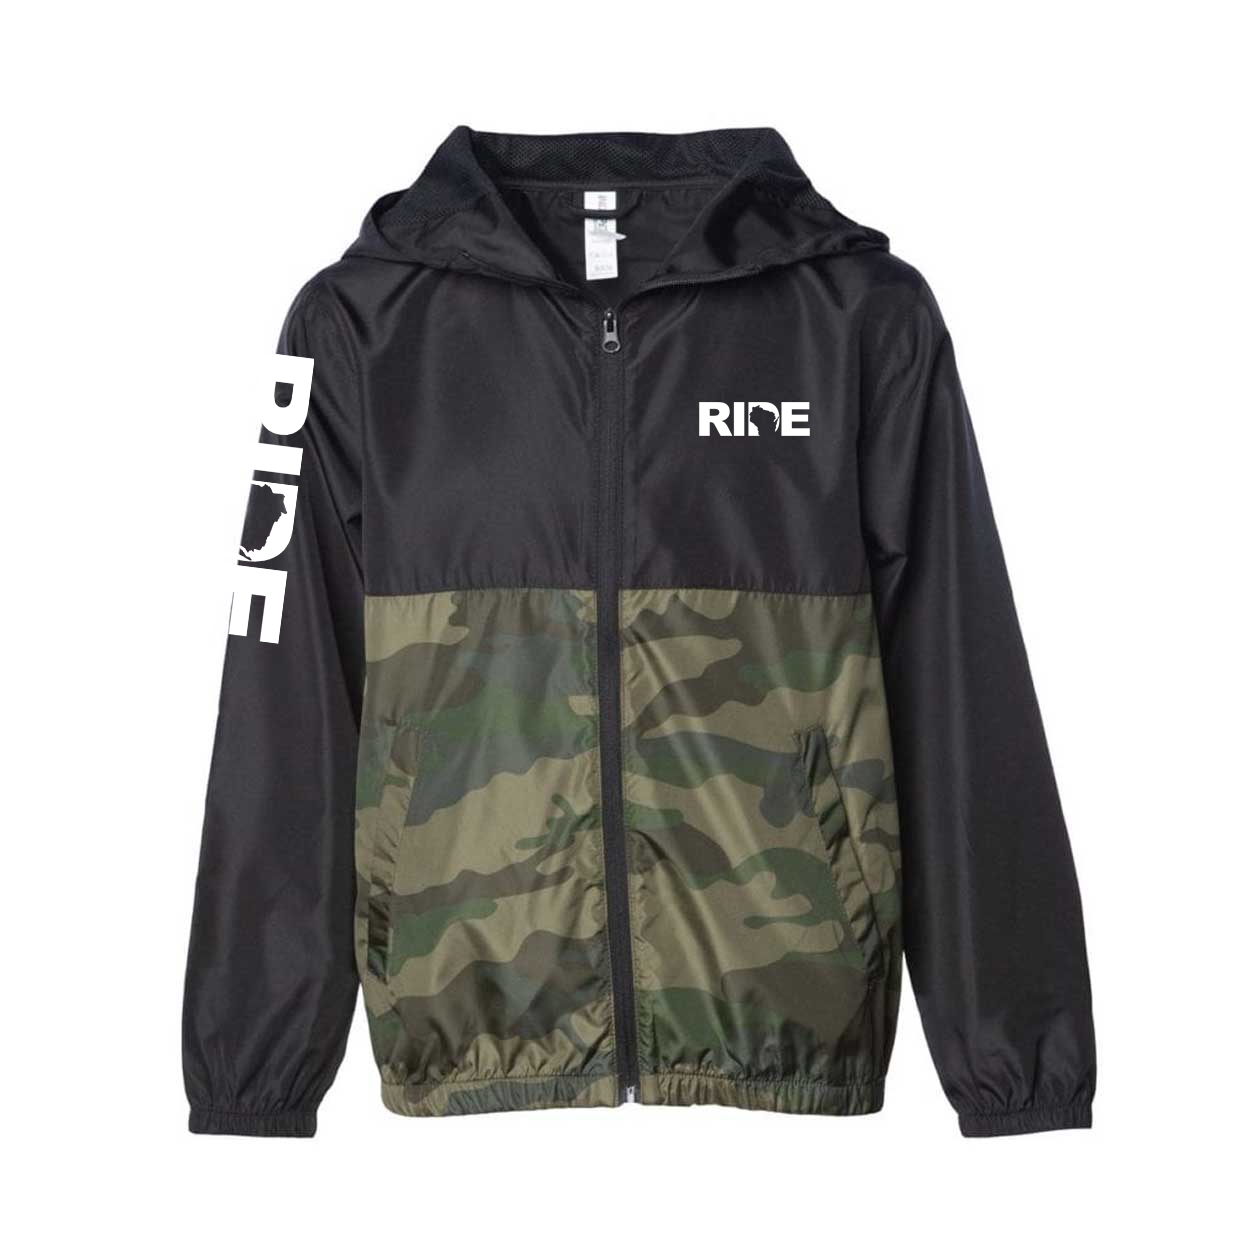 Ride Wisconsin Classic Youth Lightweight Windbreaker Black/Forest Camo (White Logo)